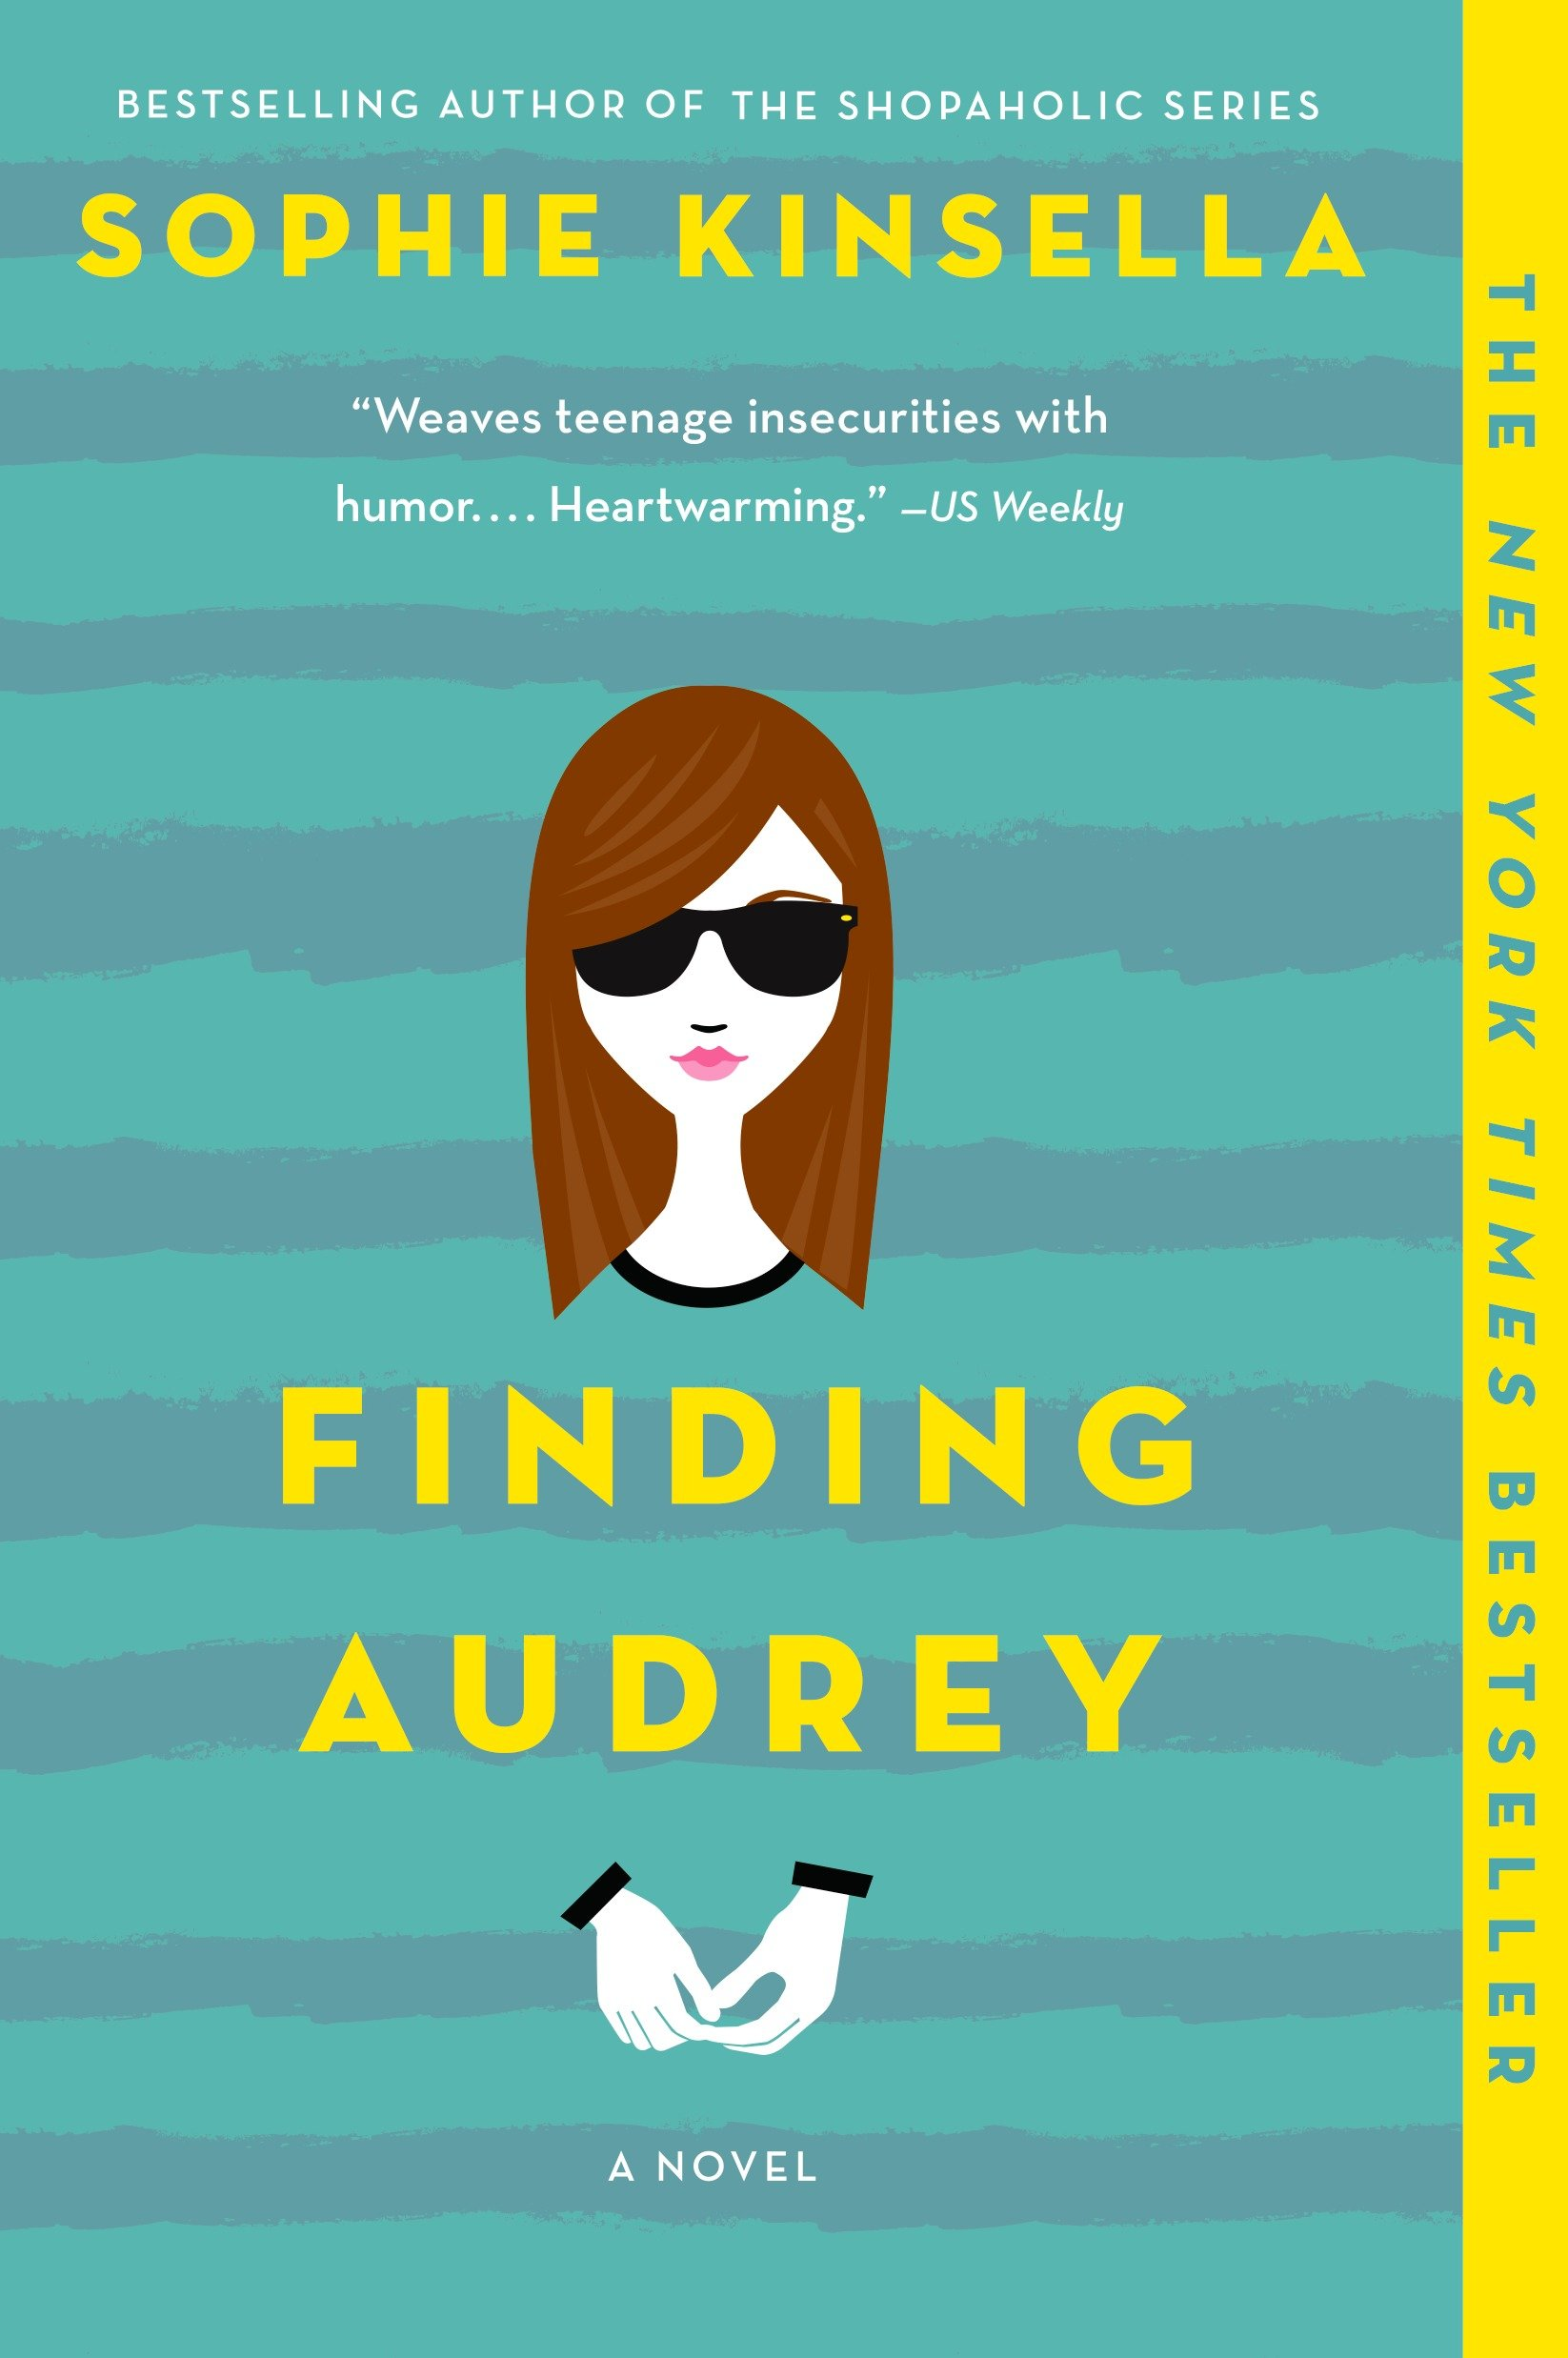 Finding Audrey cover image